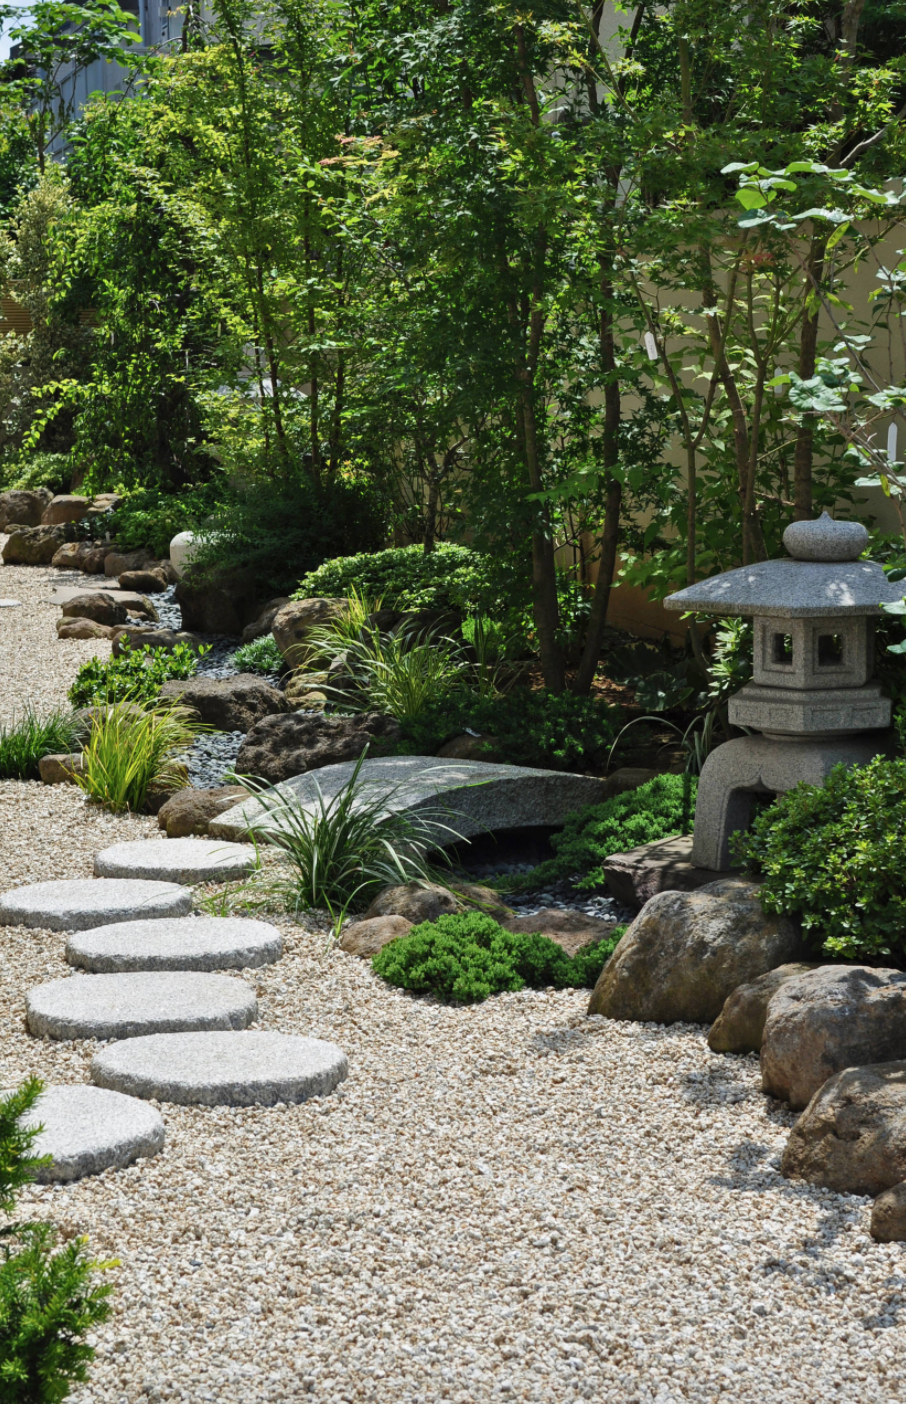 Superbe Japanese Zen Garden With Foot Stones And Decor